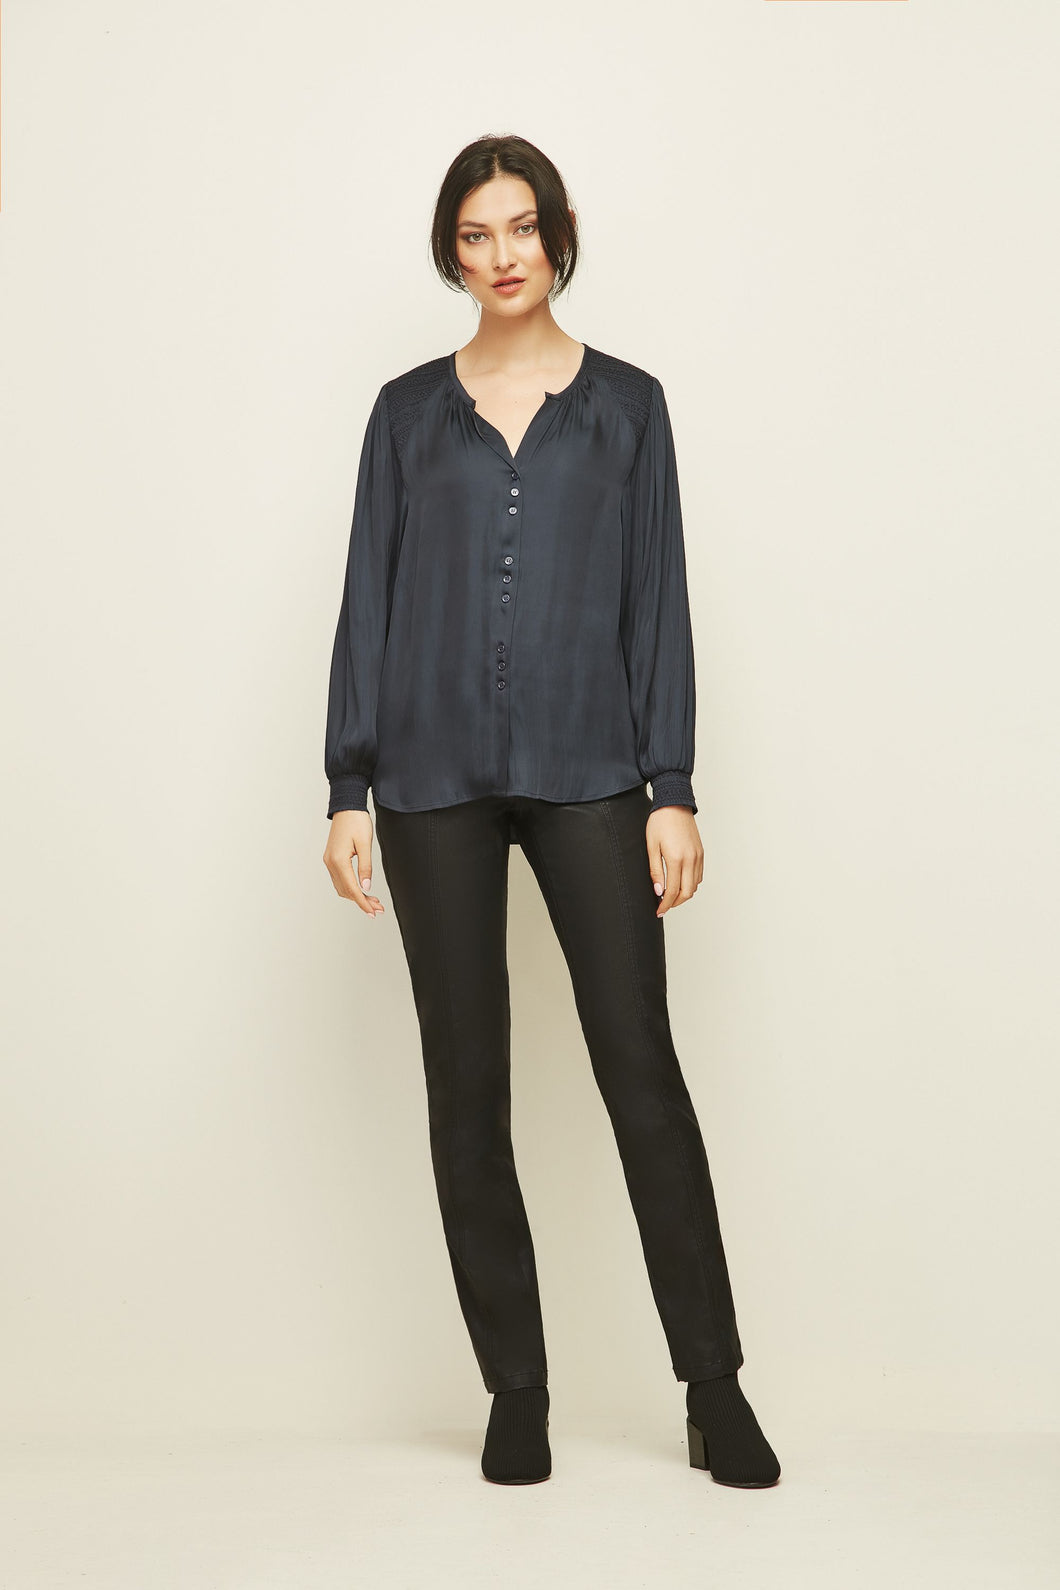 Verge Lido Blouse